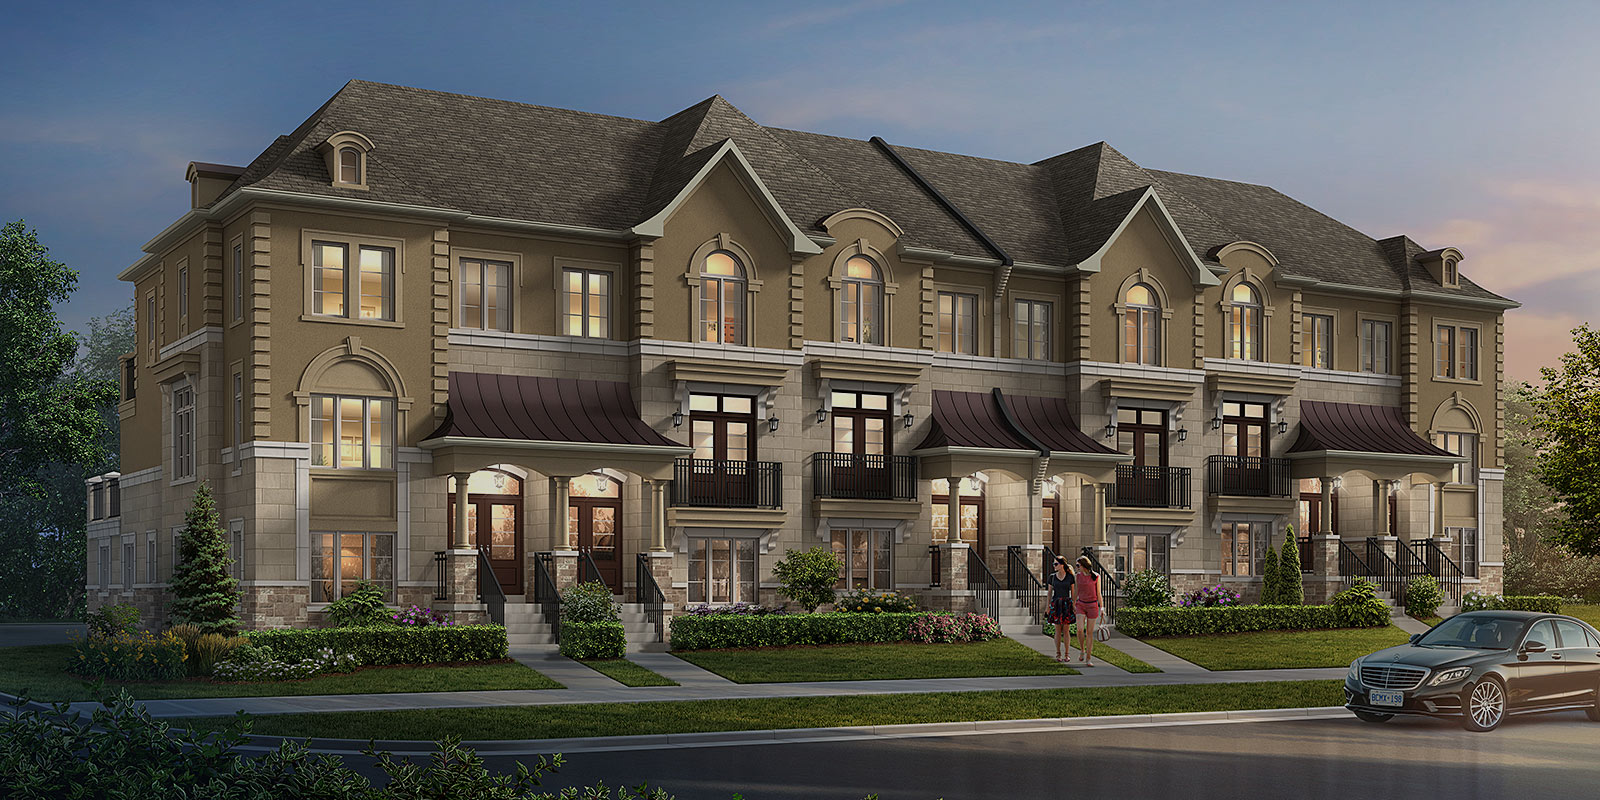 Coming Soon: Three-bedroom Executive Towns in Thornhill